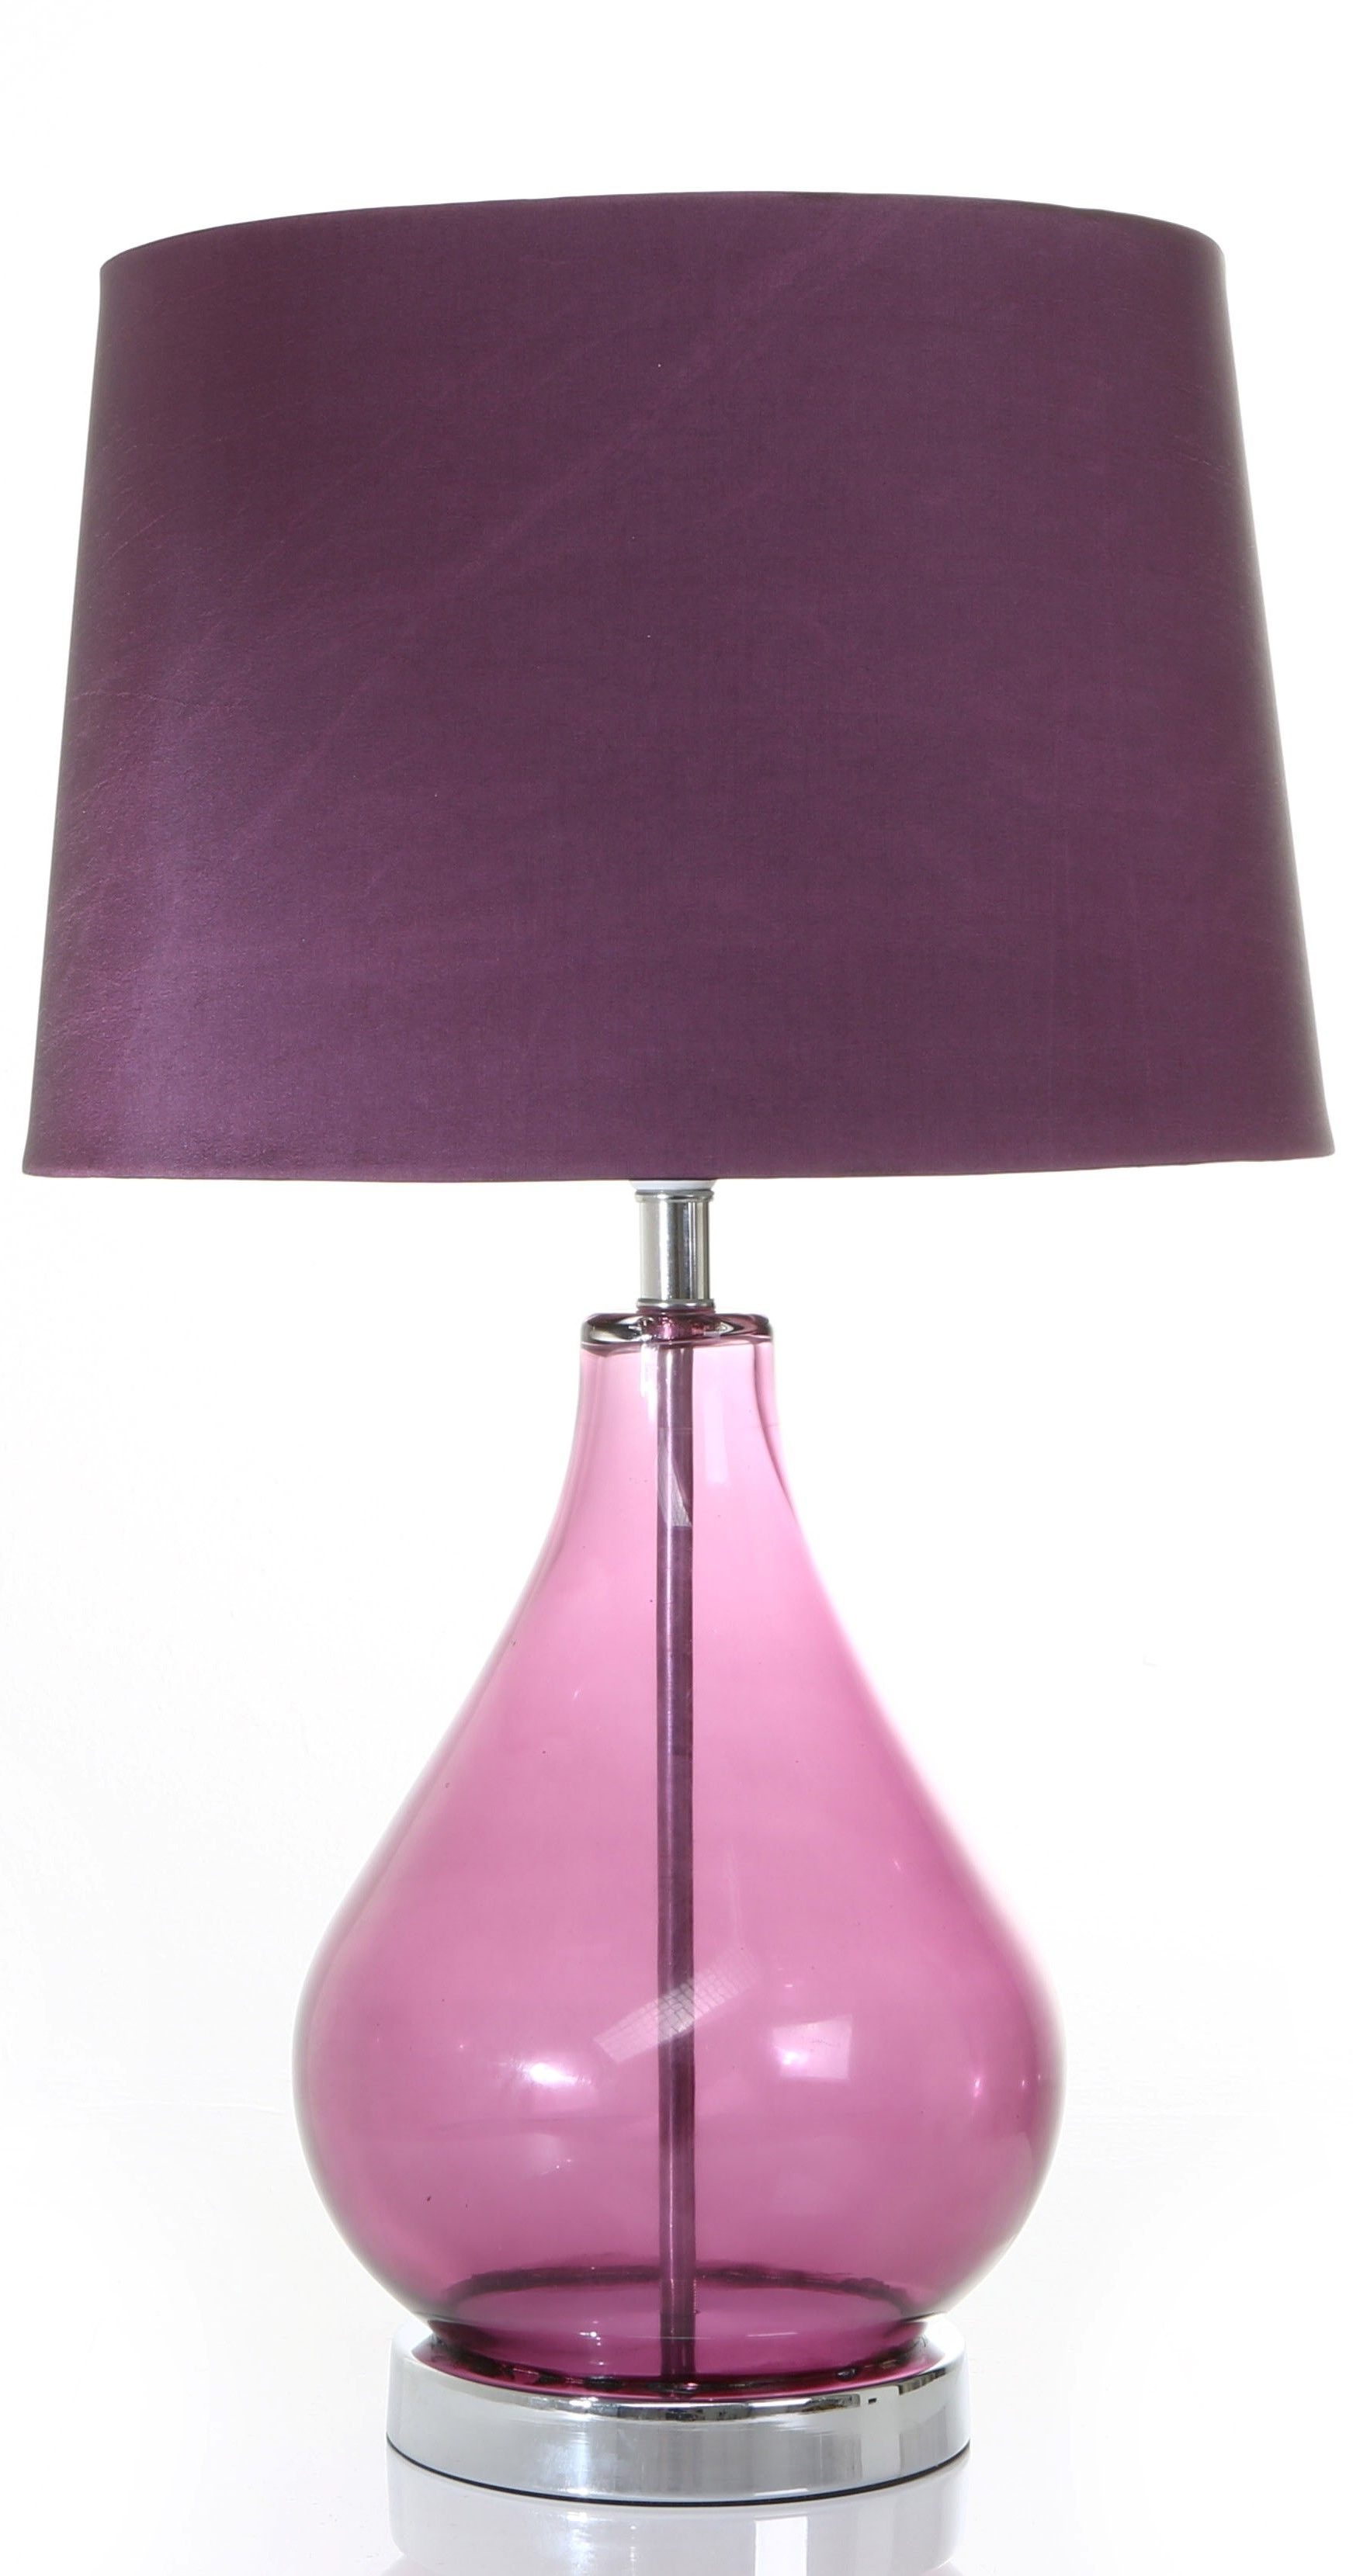 Well Known Amusing Modern Glass Table Lamp 28 Contemporary For Living Room Within Pink Table Lamps For Living Room (View 14 of 15)